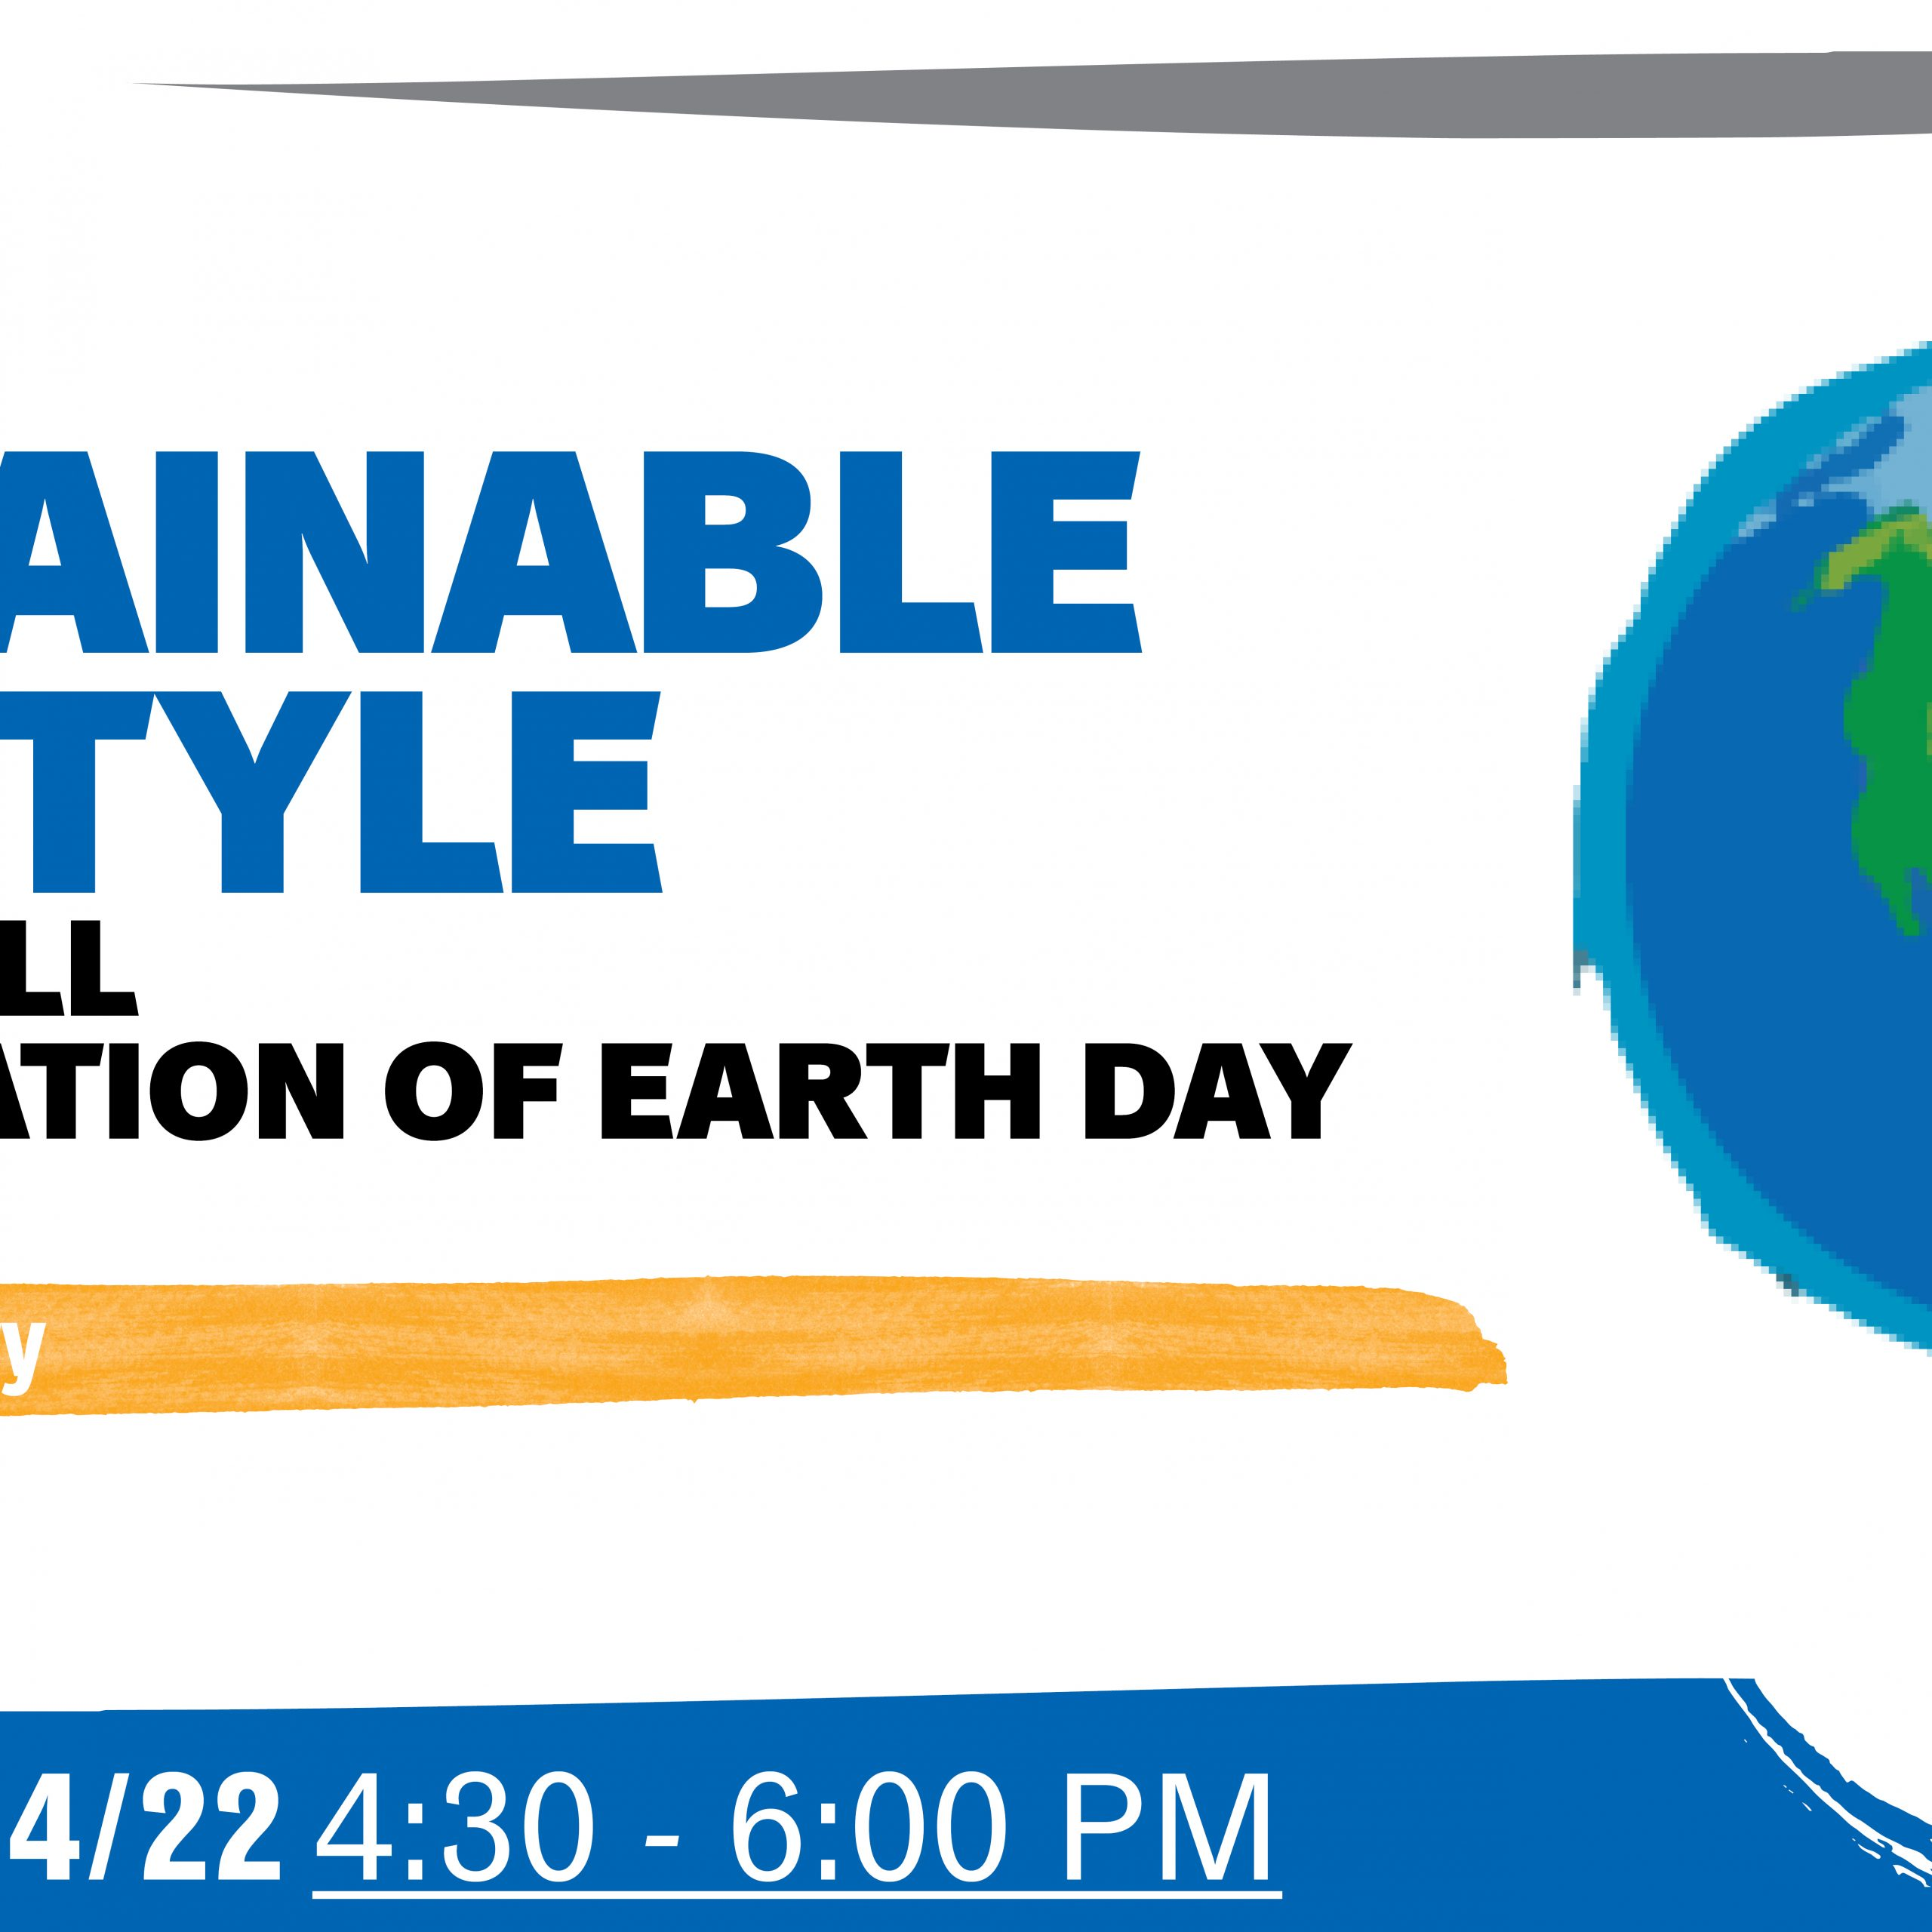 sustainable lifestyle scaled gksrSR.tmp